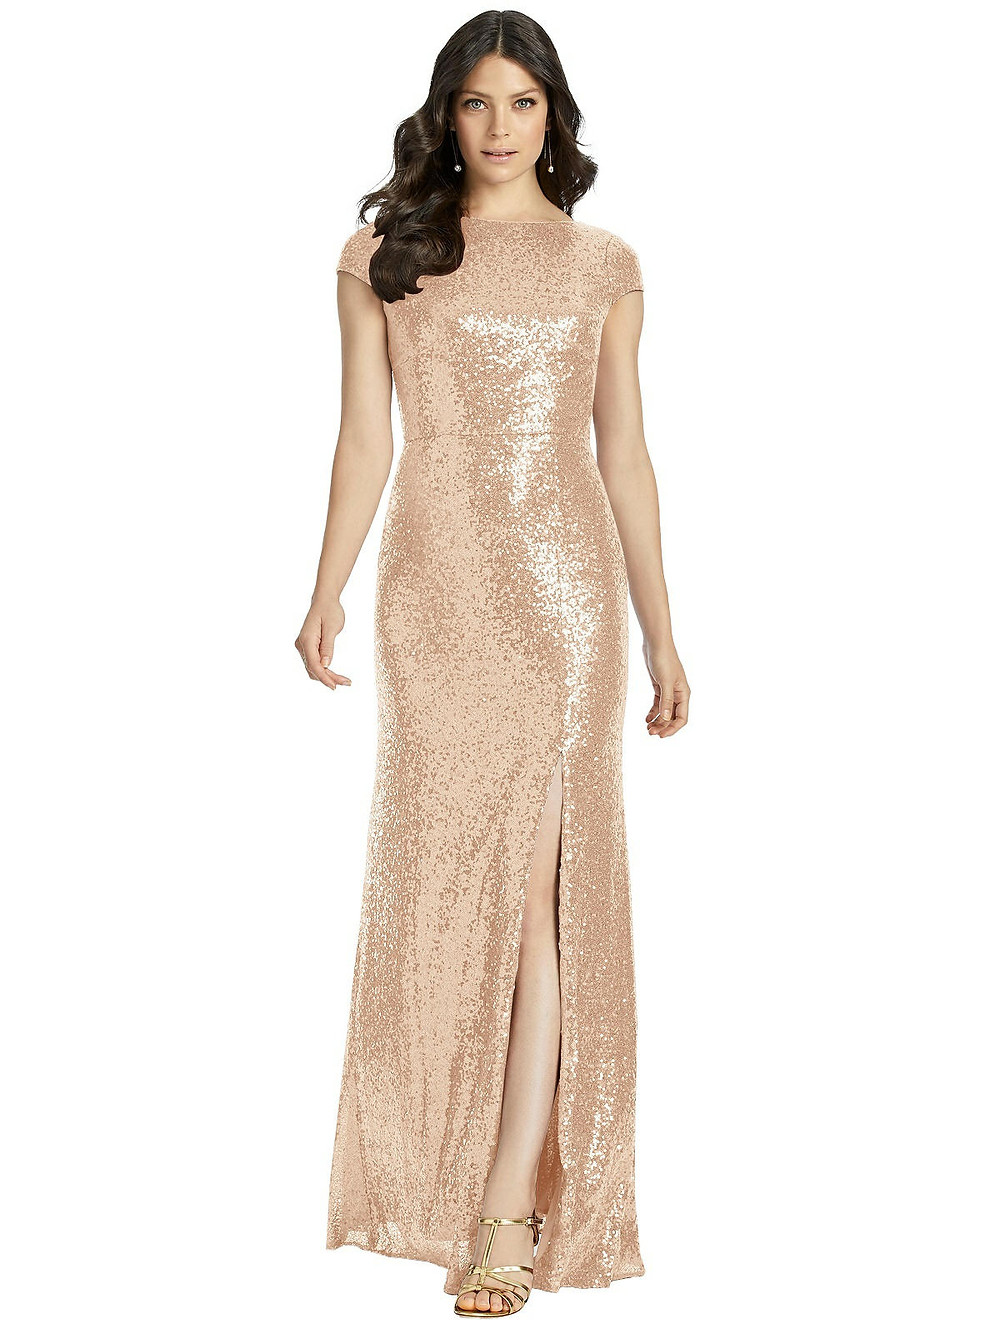 Available in our Lincolnshire boutique, 3043 by Dessy Bridesmaid is a beautiful rose gold sequin gown with a knee high slit